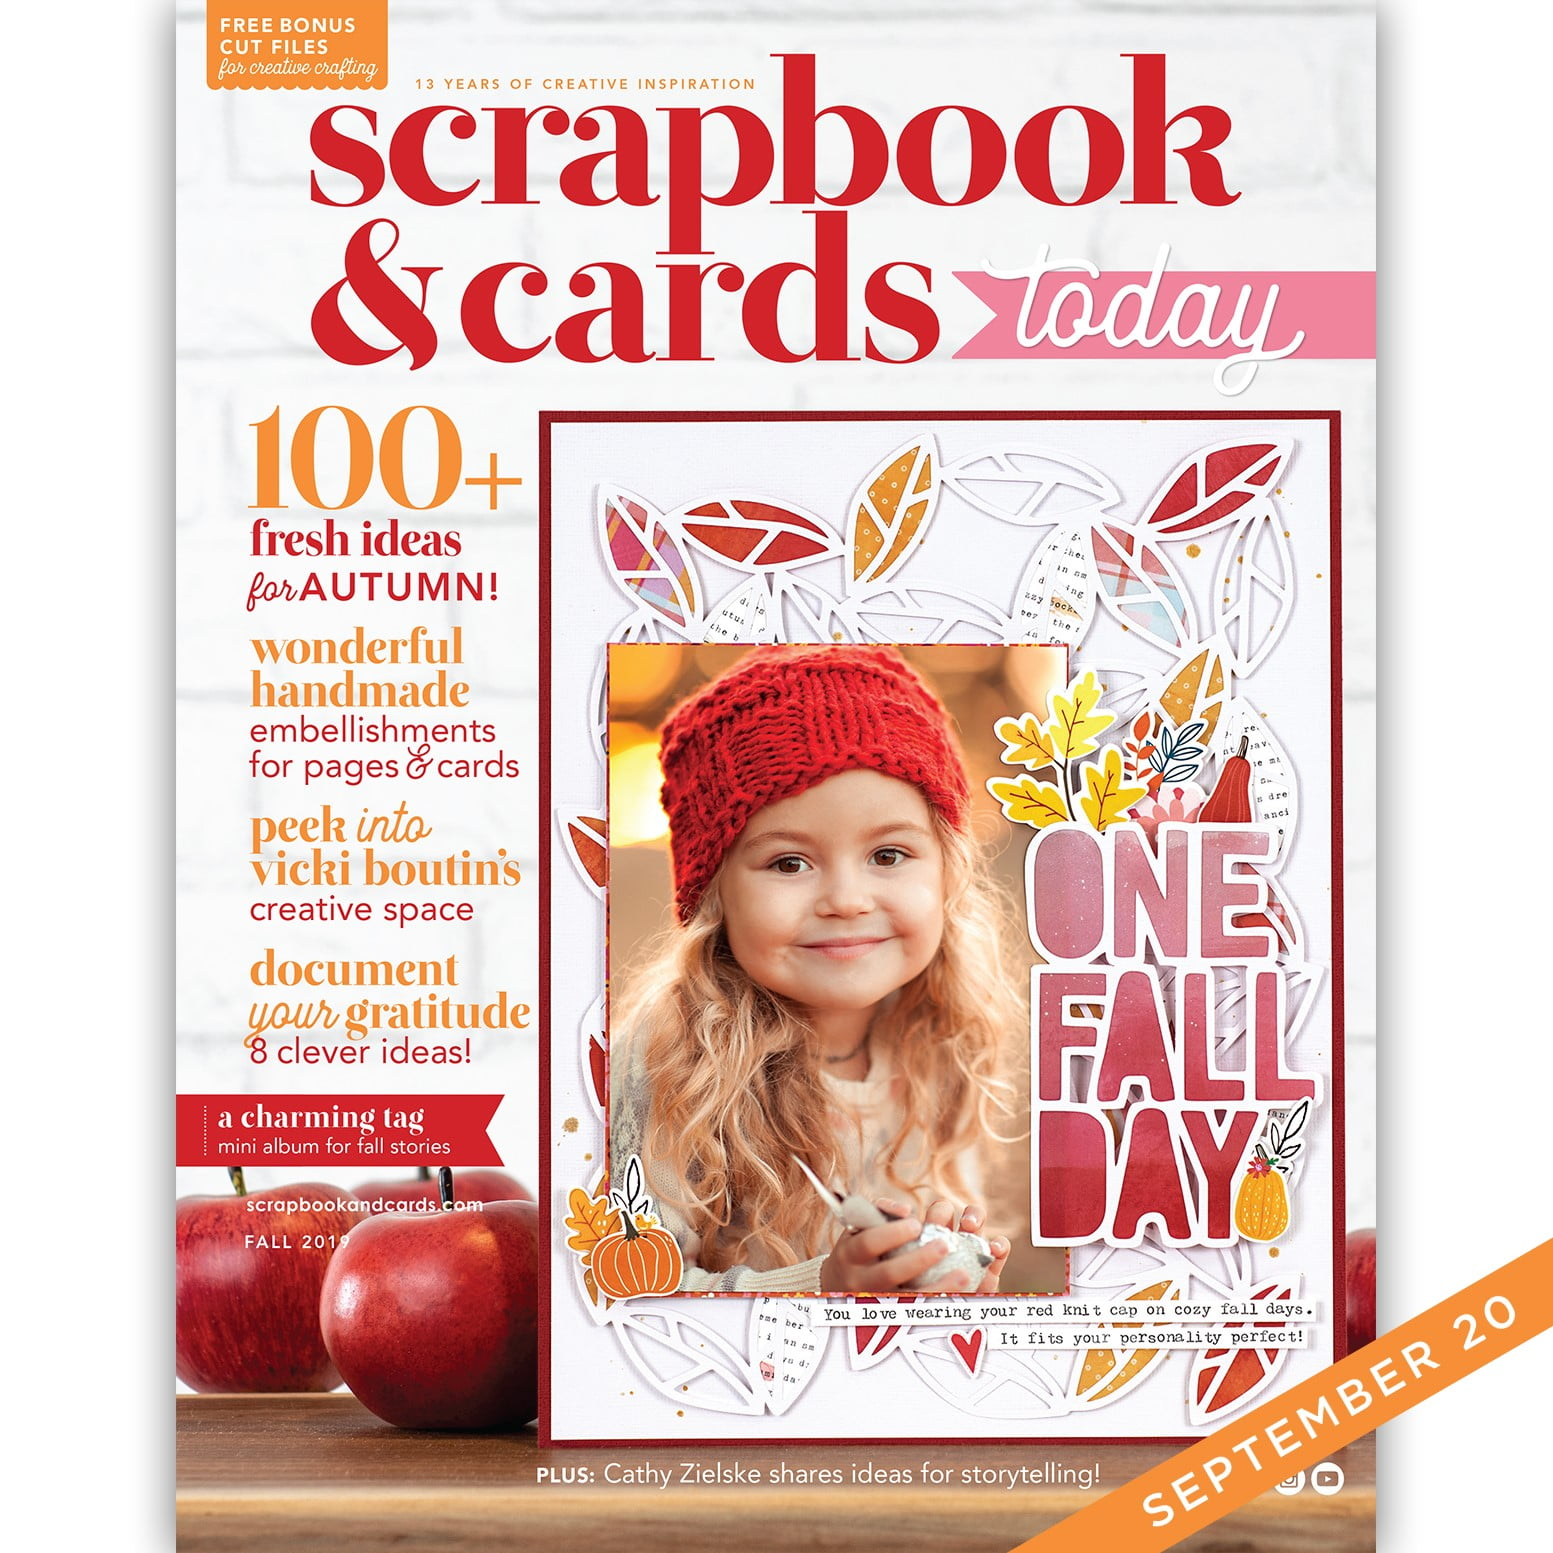 Scrapbook & Cards Today - Fall 2019 Issue